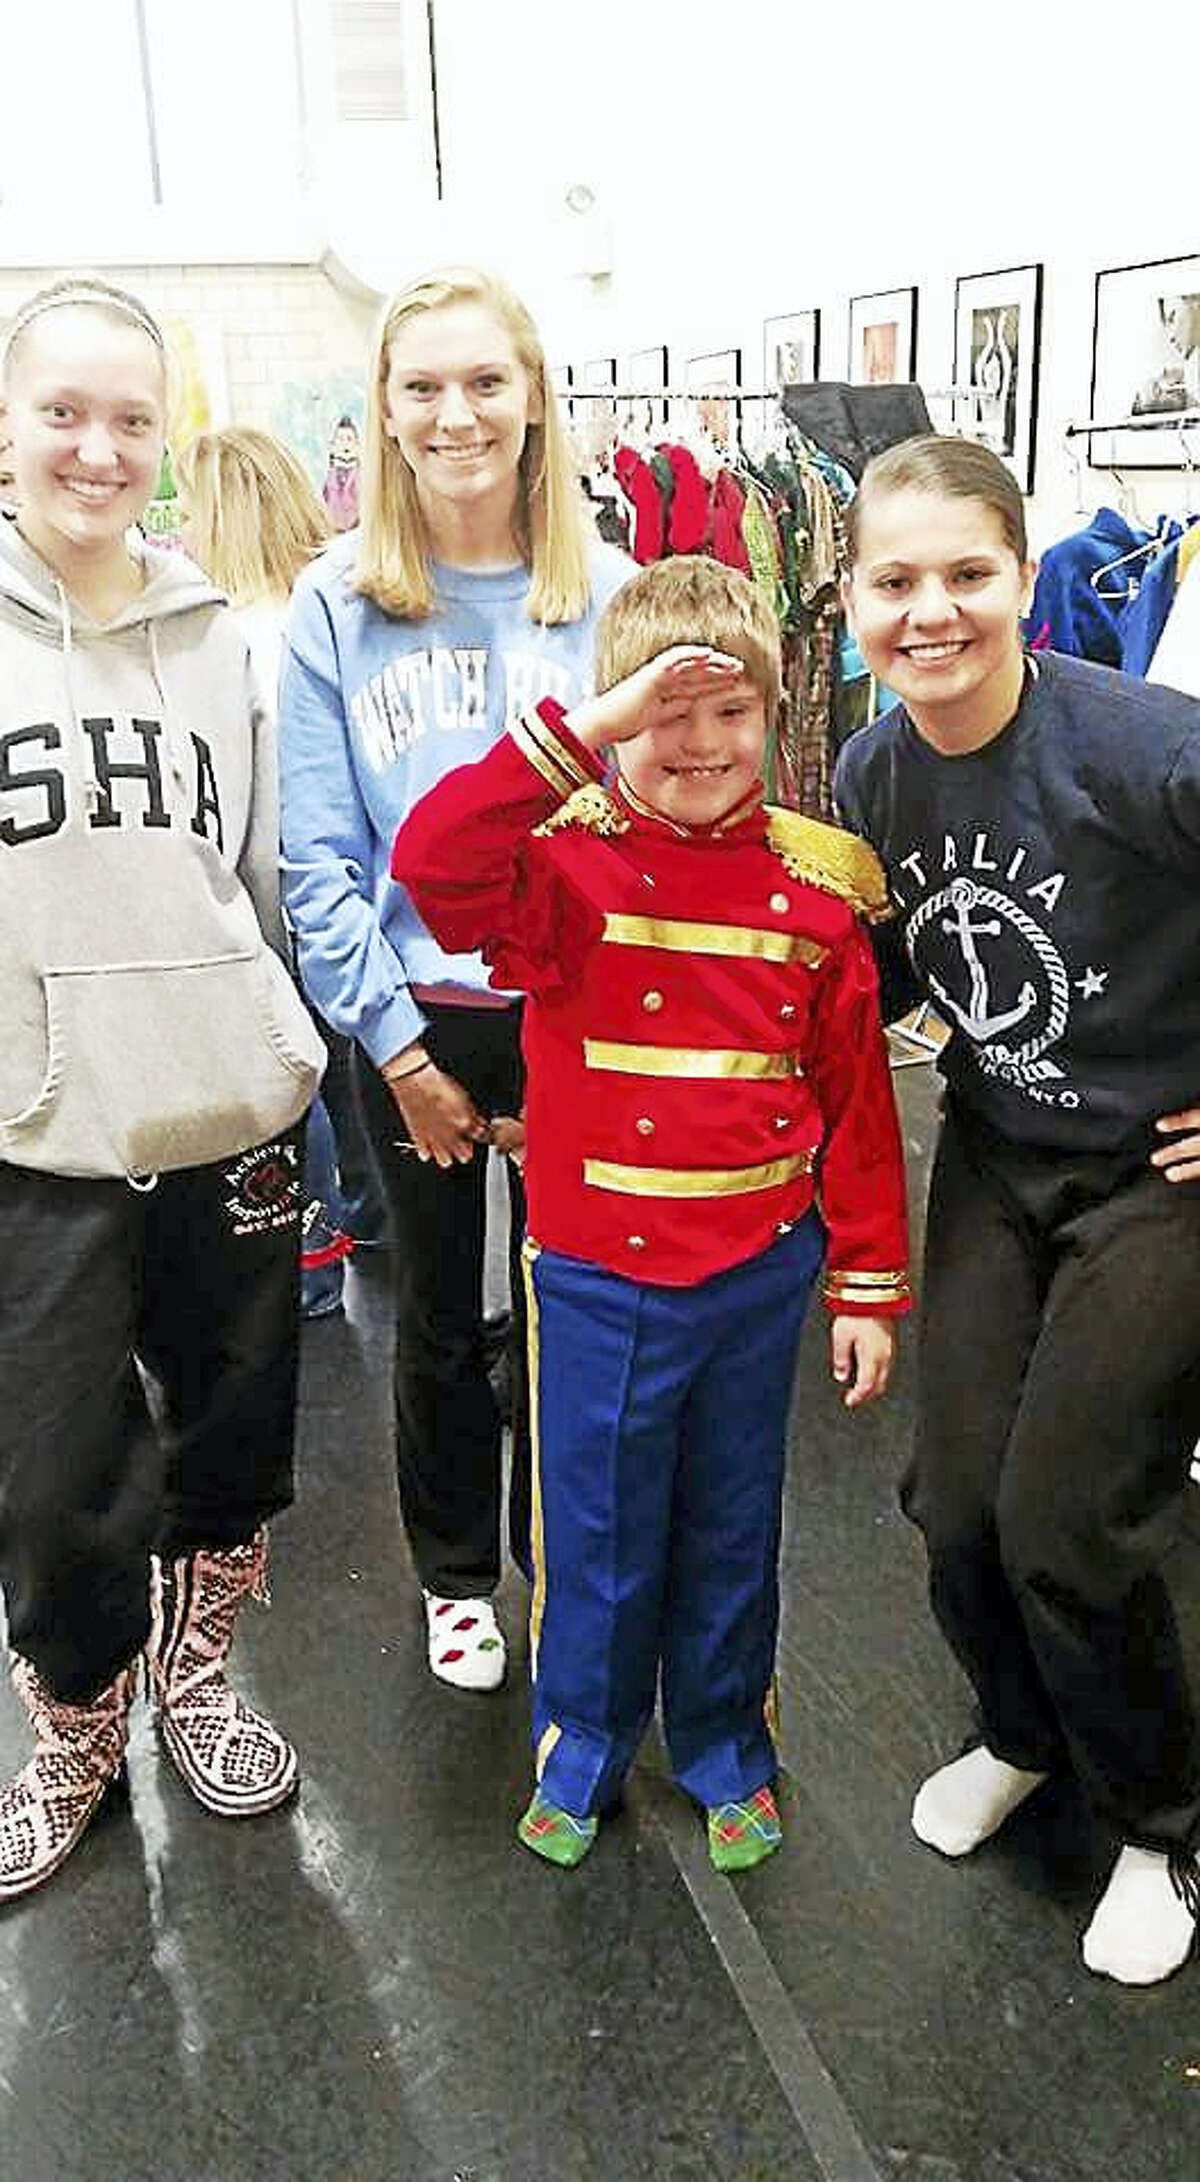 Contributed photo From left: mentors Katerina Bilcheck and Rylee Doheny, adaptive ballet student Marshall Firmender, dressed as a soldier for last year's production and former mentor Kristen Faraclas.